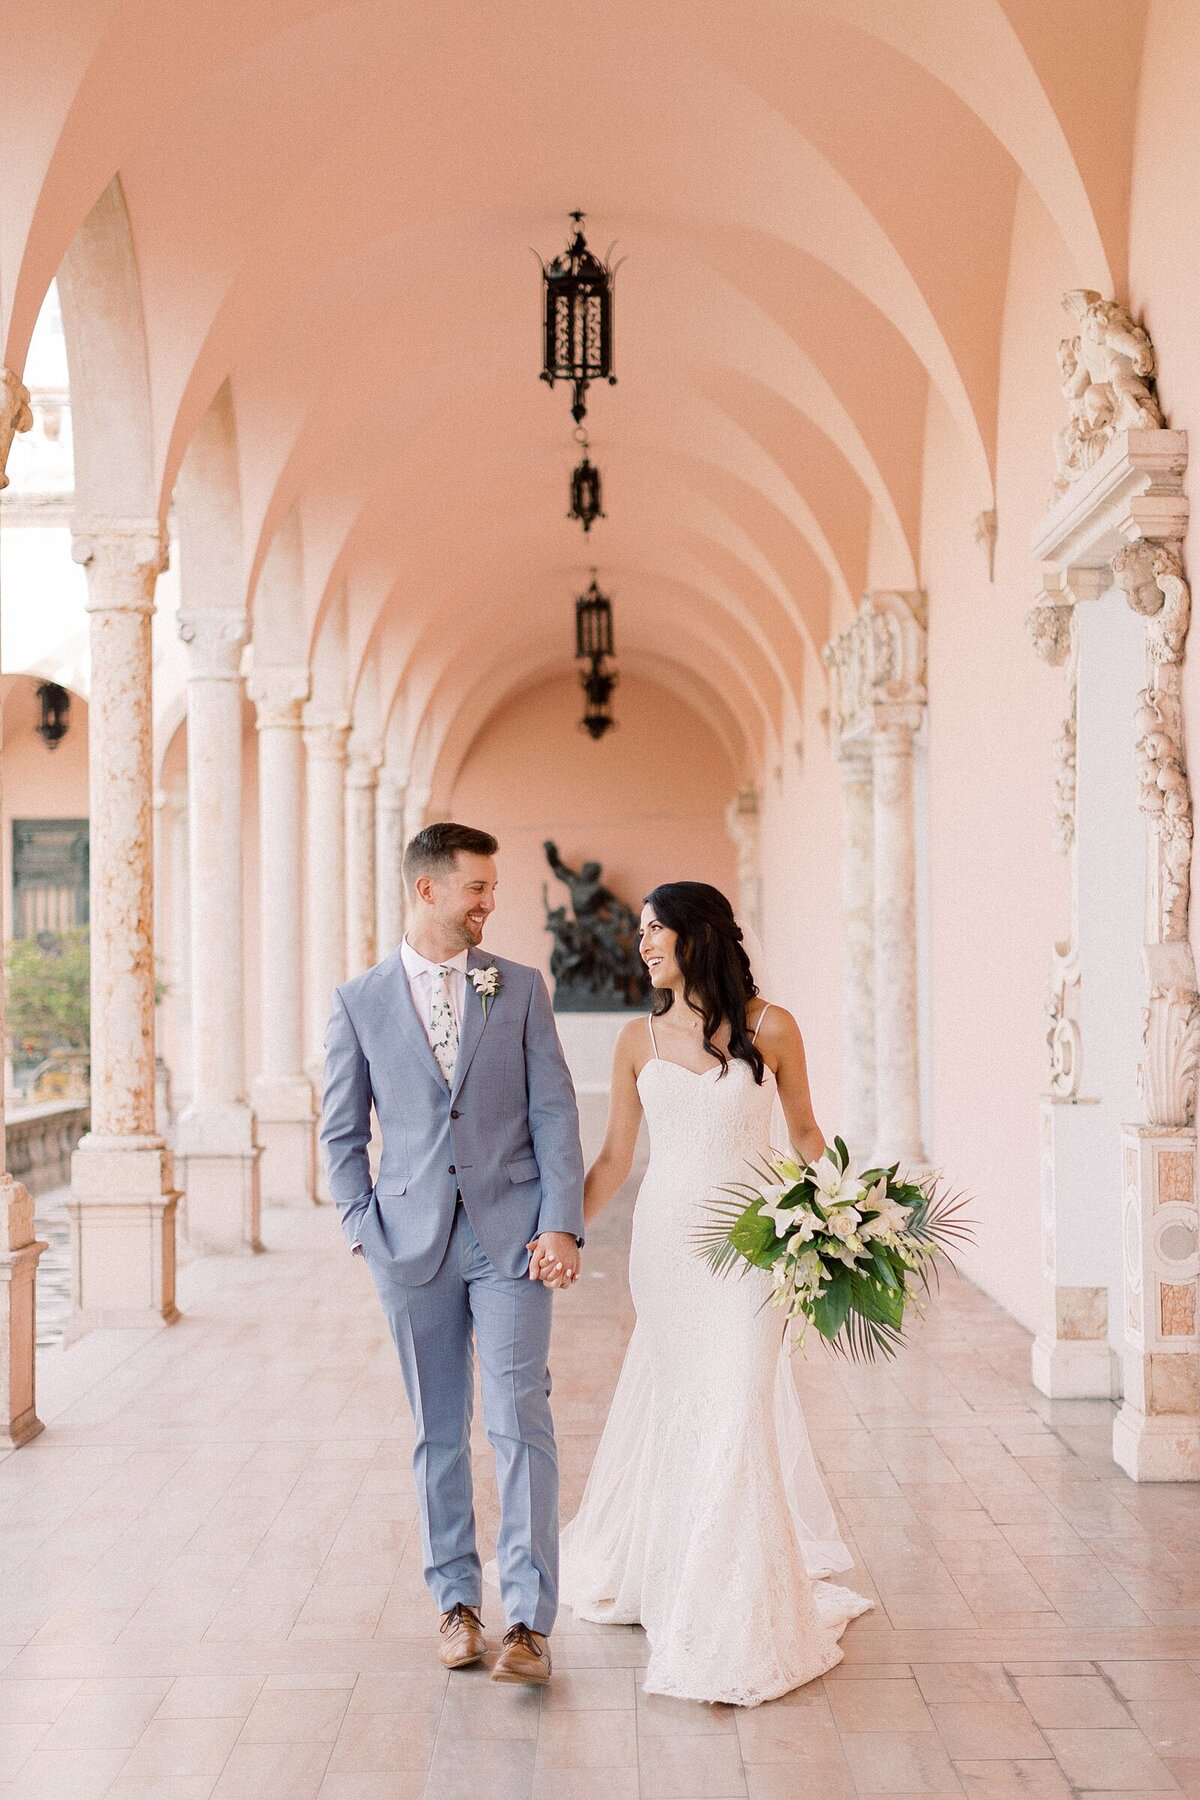 Williams-Siesta Key Florida Ringling Museum Wedding Casie Marie Photography-307